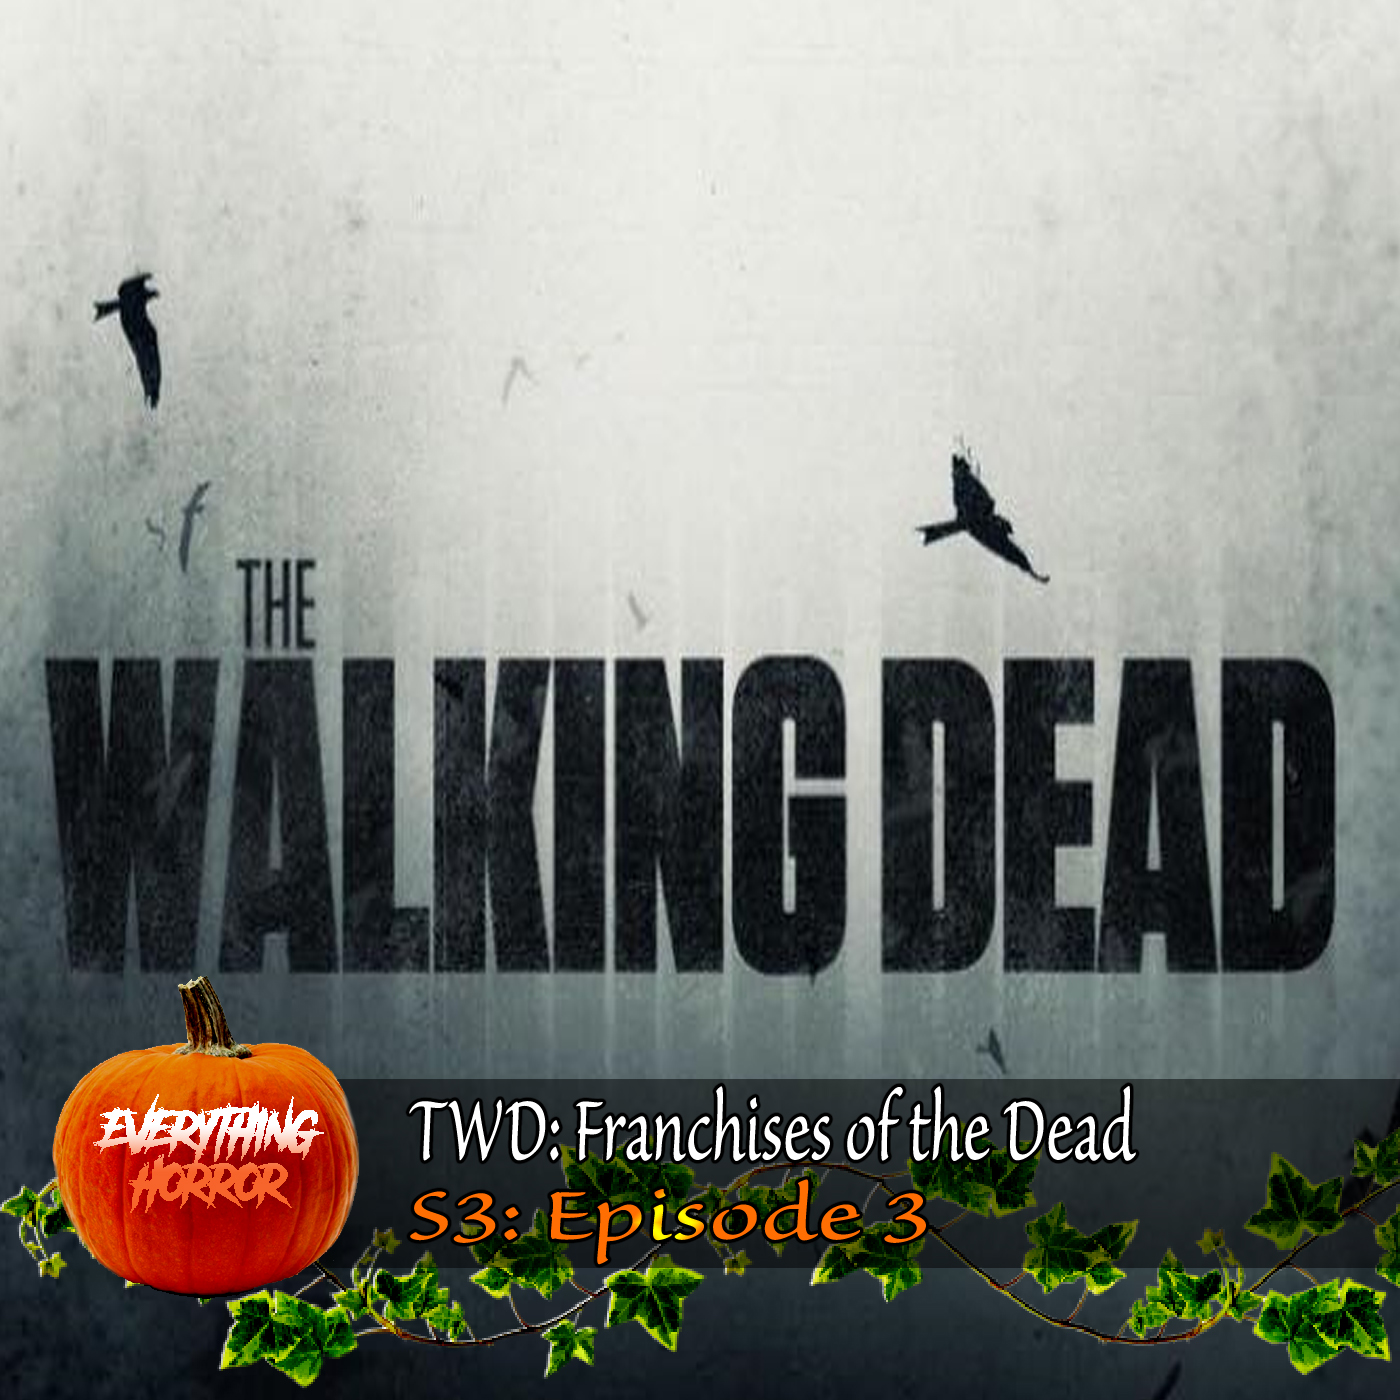 S3: Ep 3. The Walking Dead: Franchises of the Dead